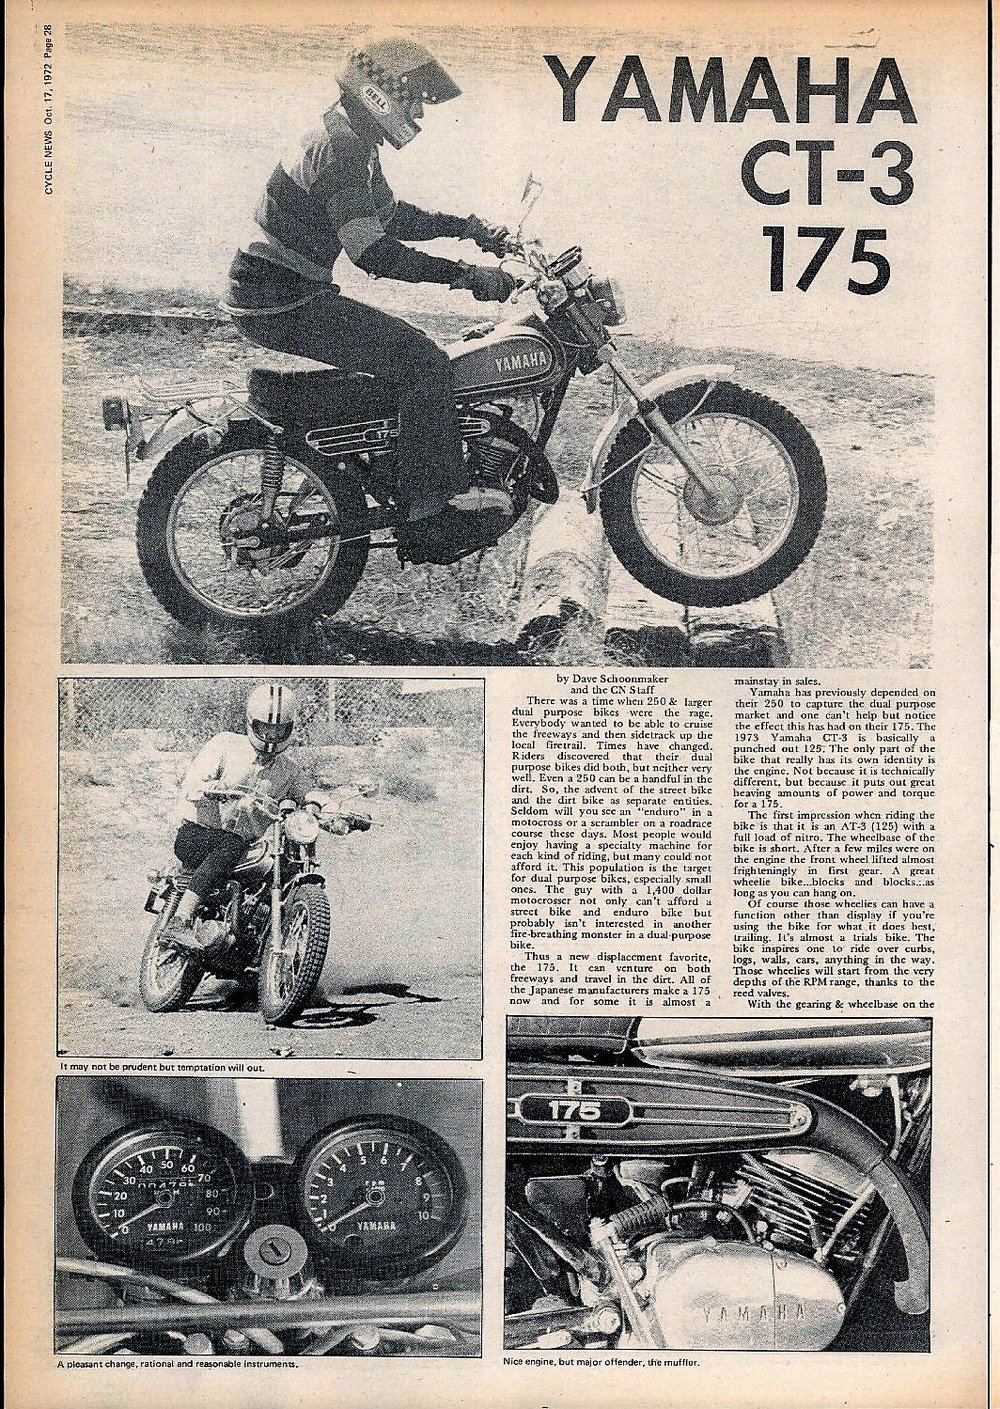 1972 Yamaha CT3 175 road test 01.jpg